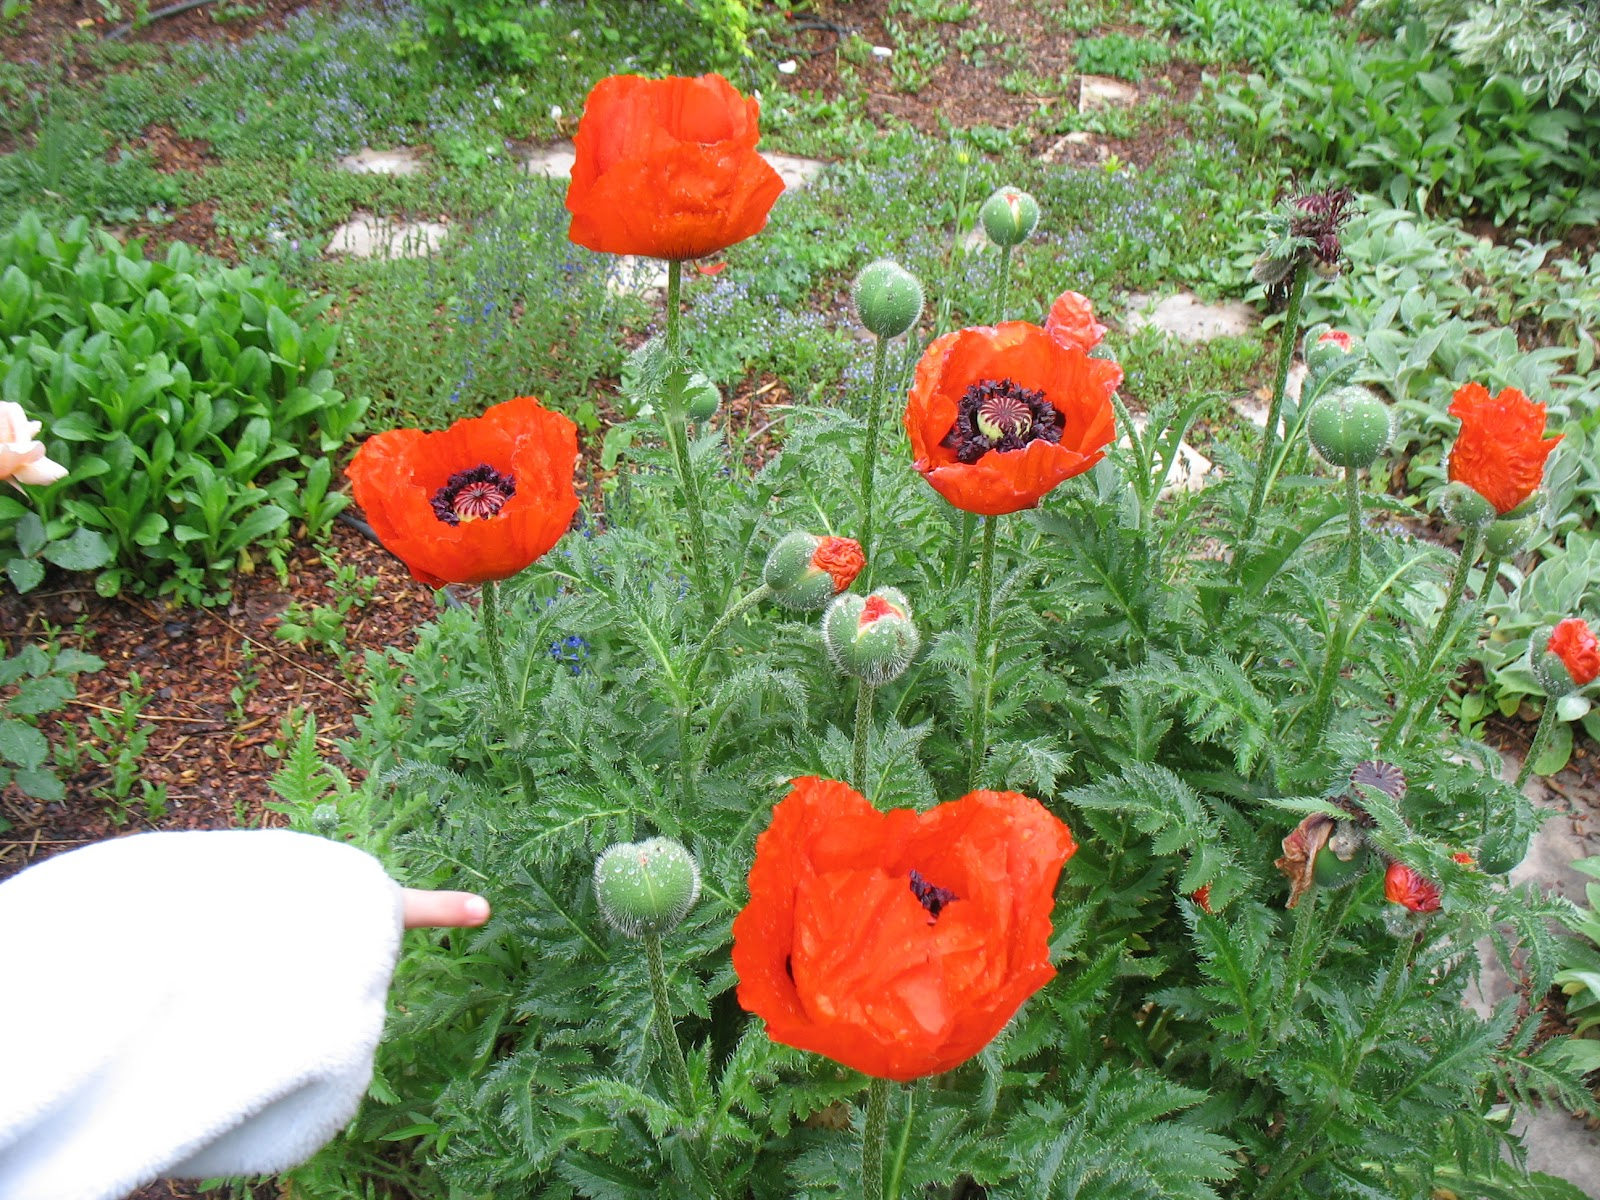 Drawn poppy flower leaves Watercolor buds your but some